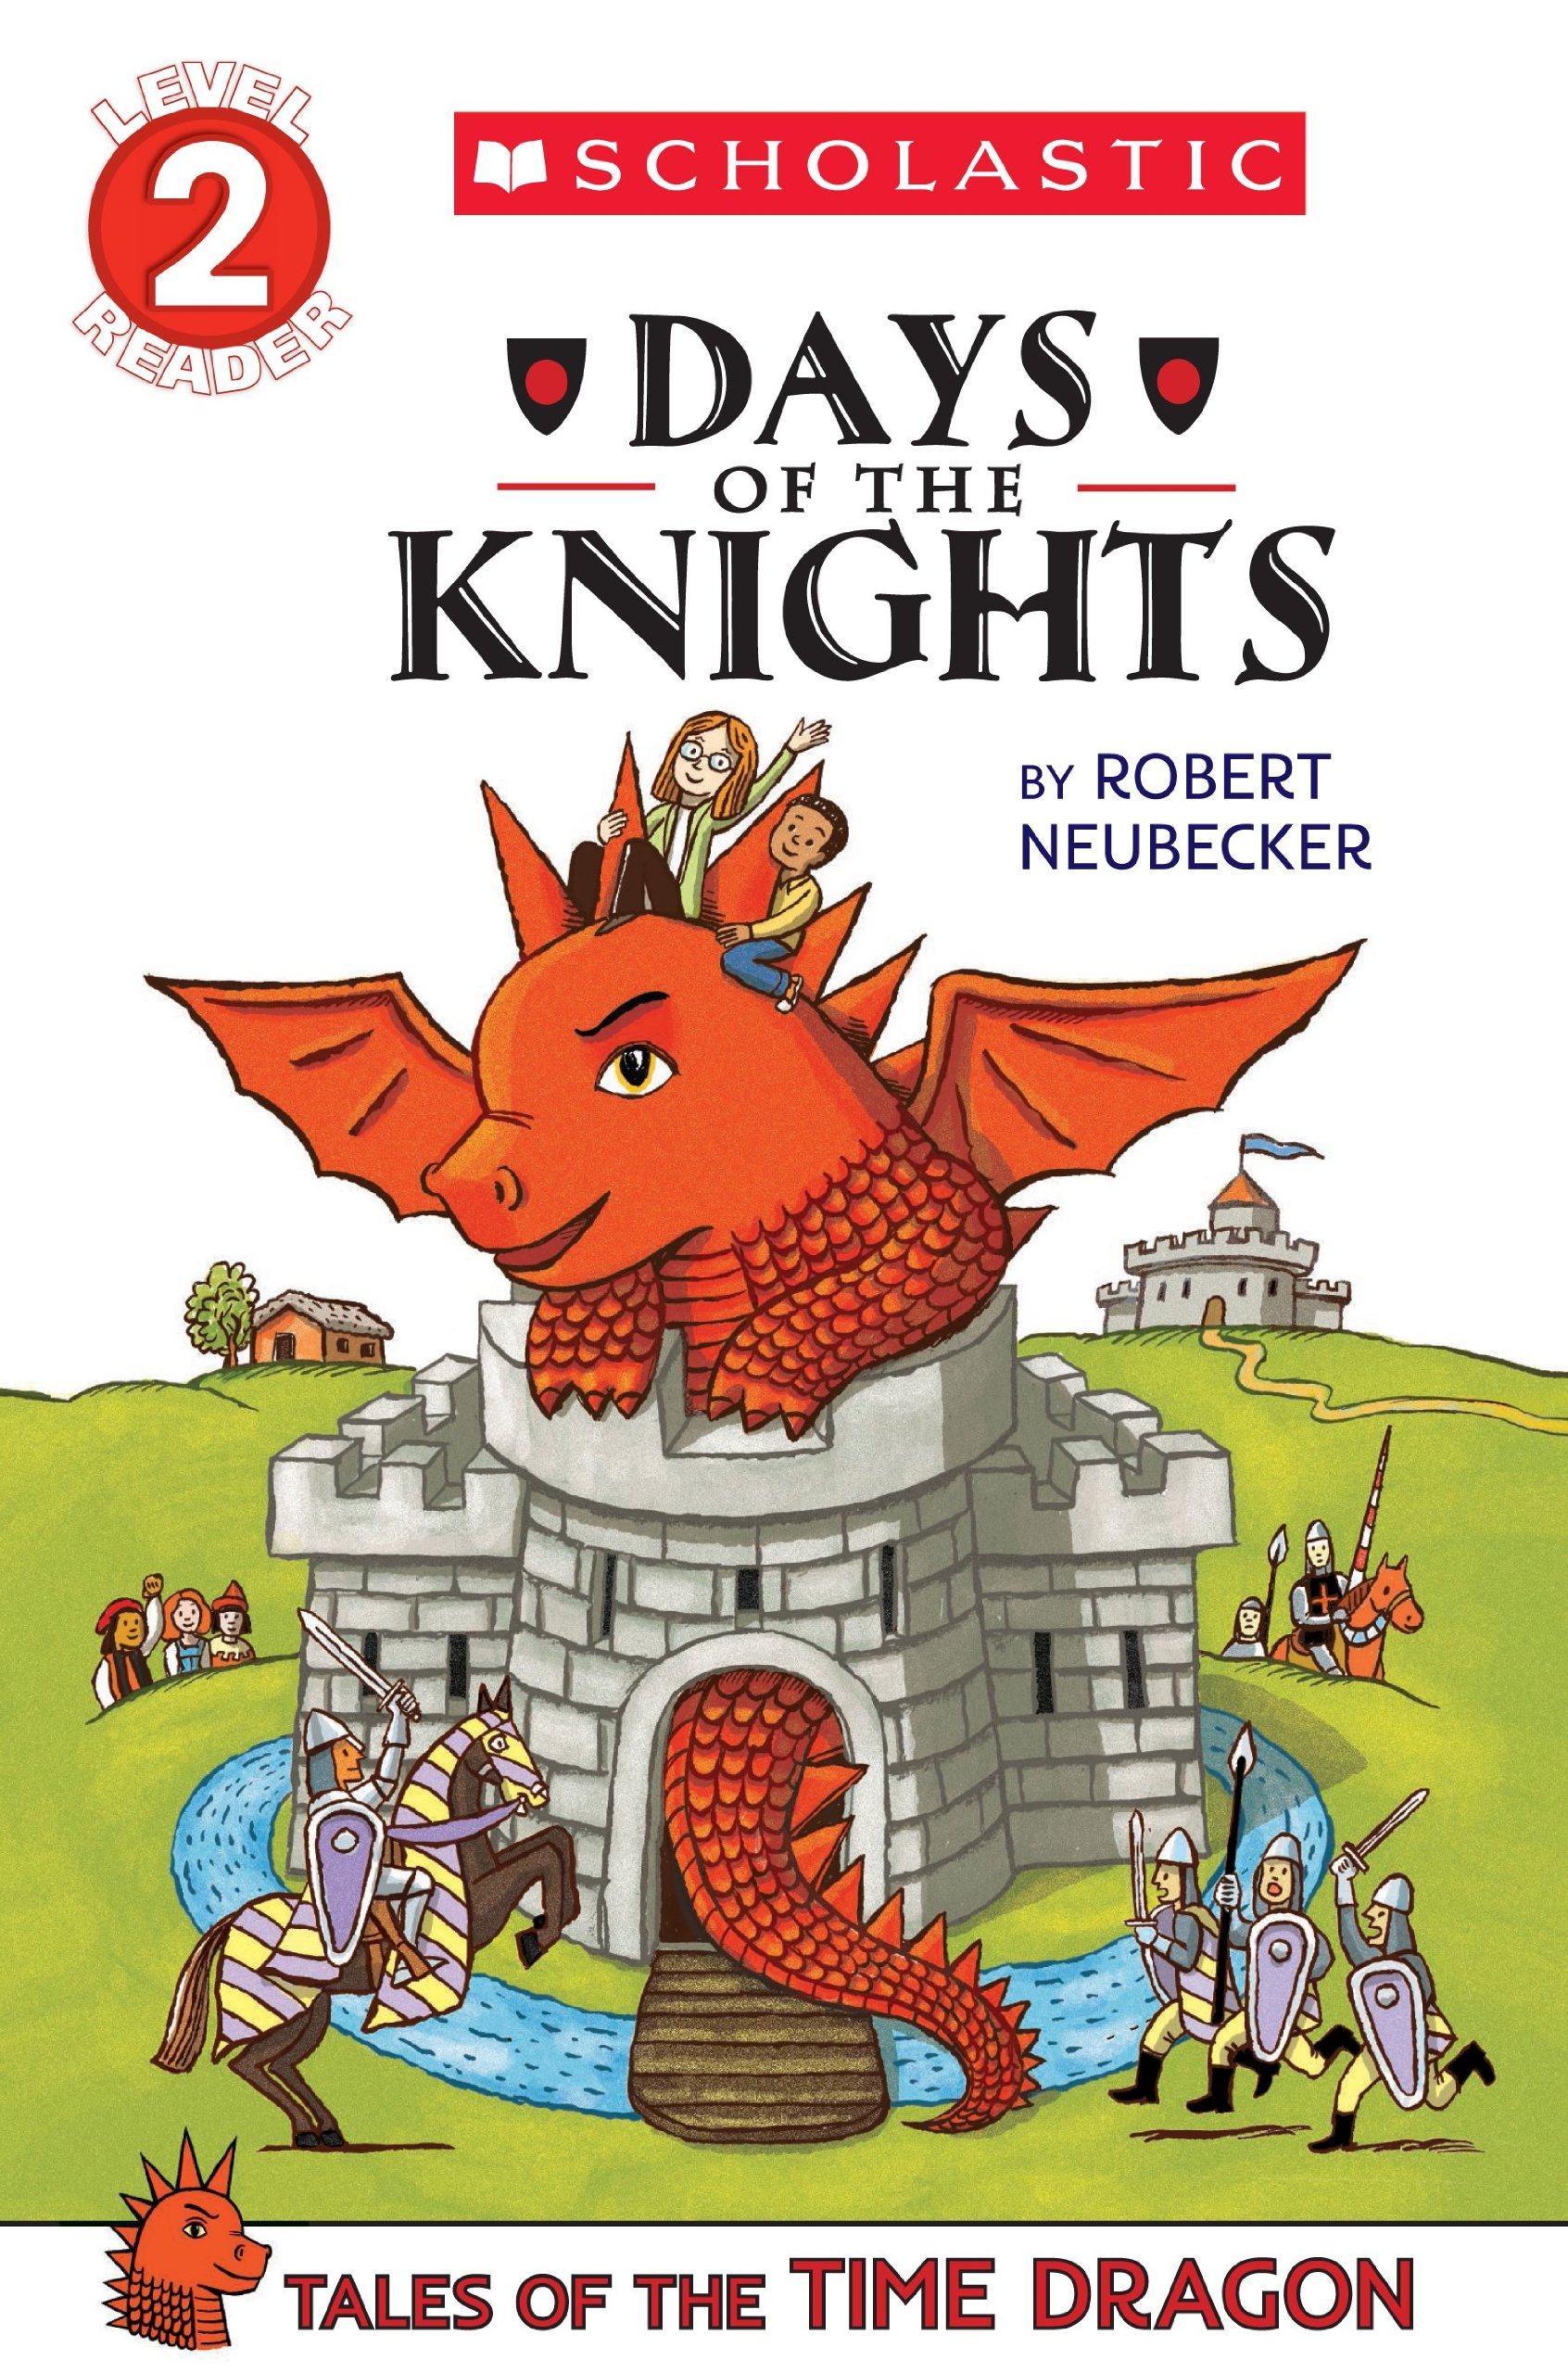 Scholastic Reader Level 2: Tales of the Time Dragon #1: Days of the Knights